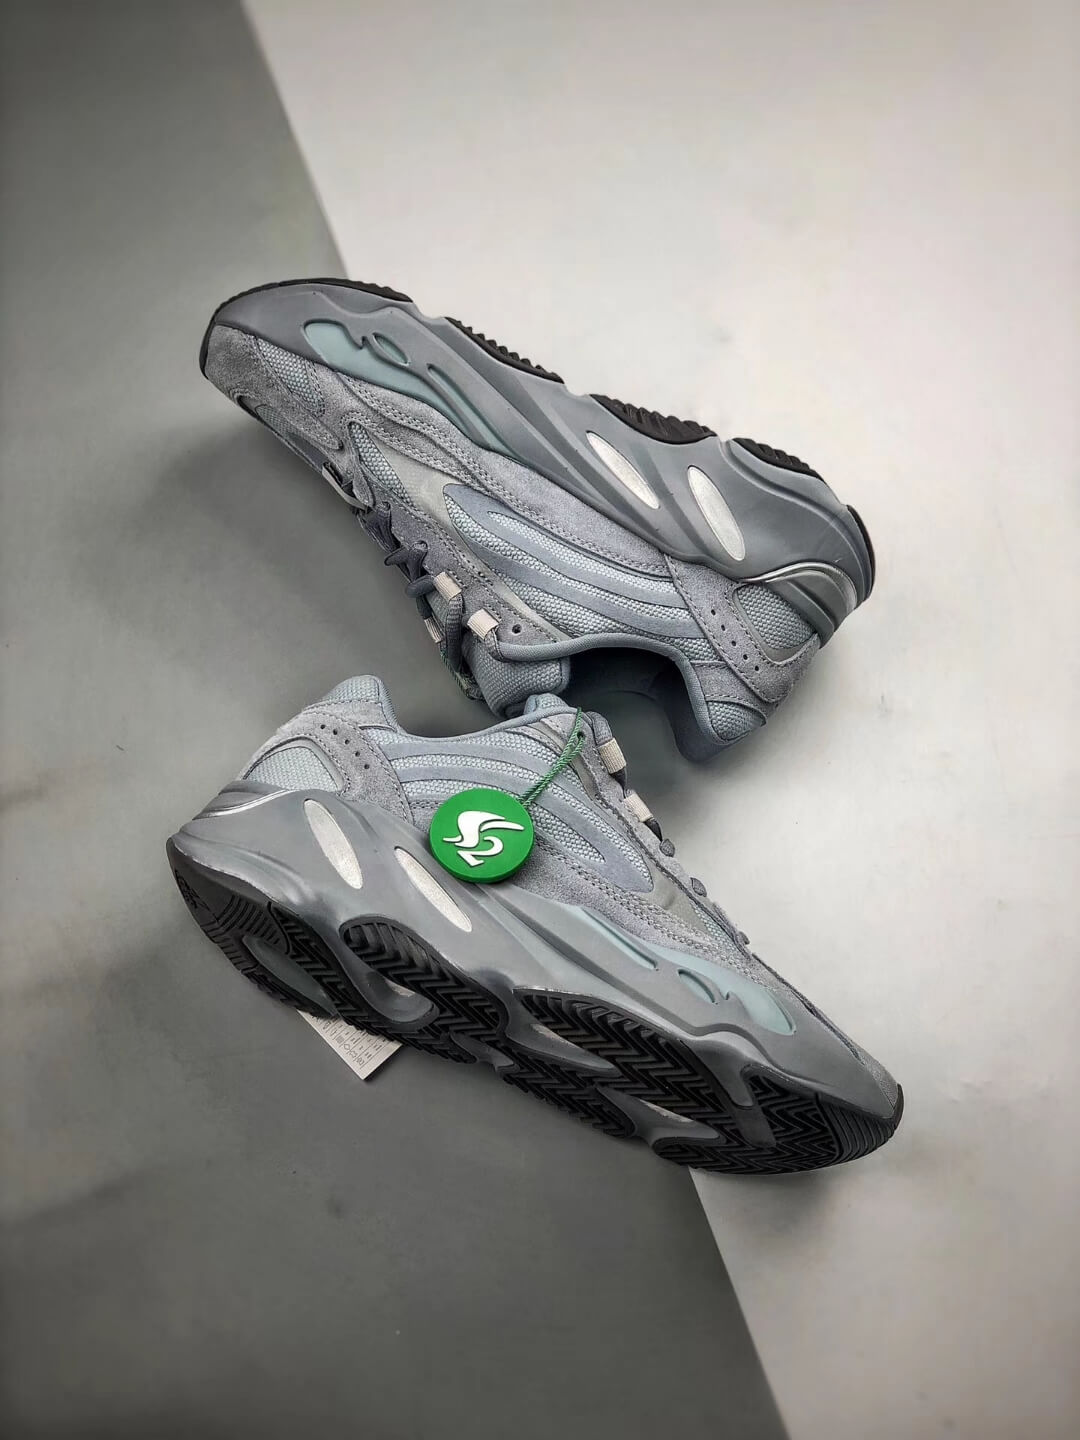 The adidas Yeezy Boost 700 V2 Hospital Blue Sneaker RepShoes 08